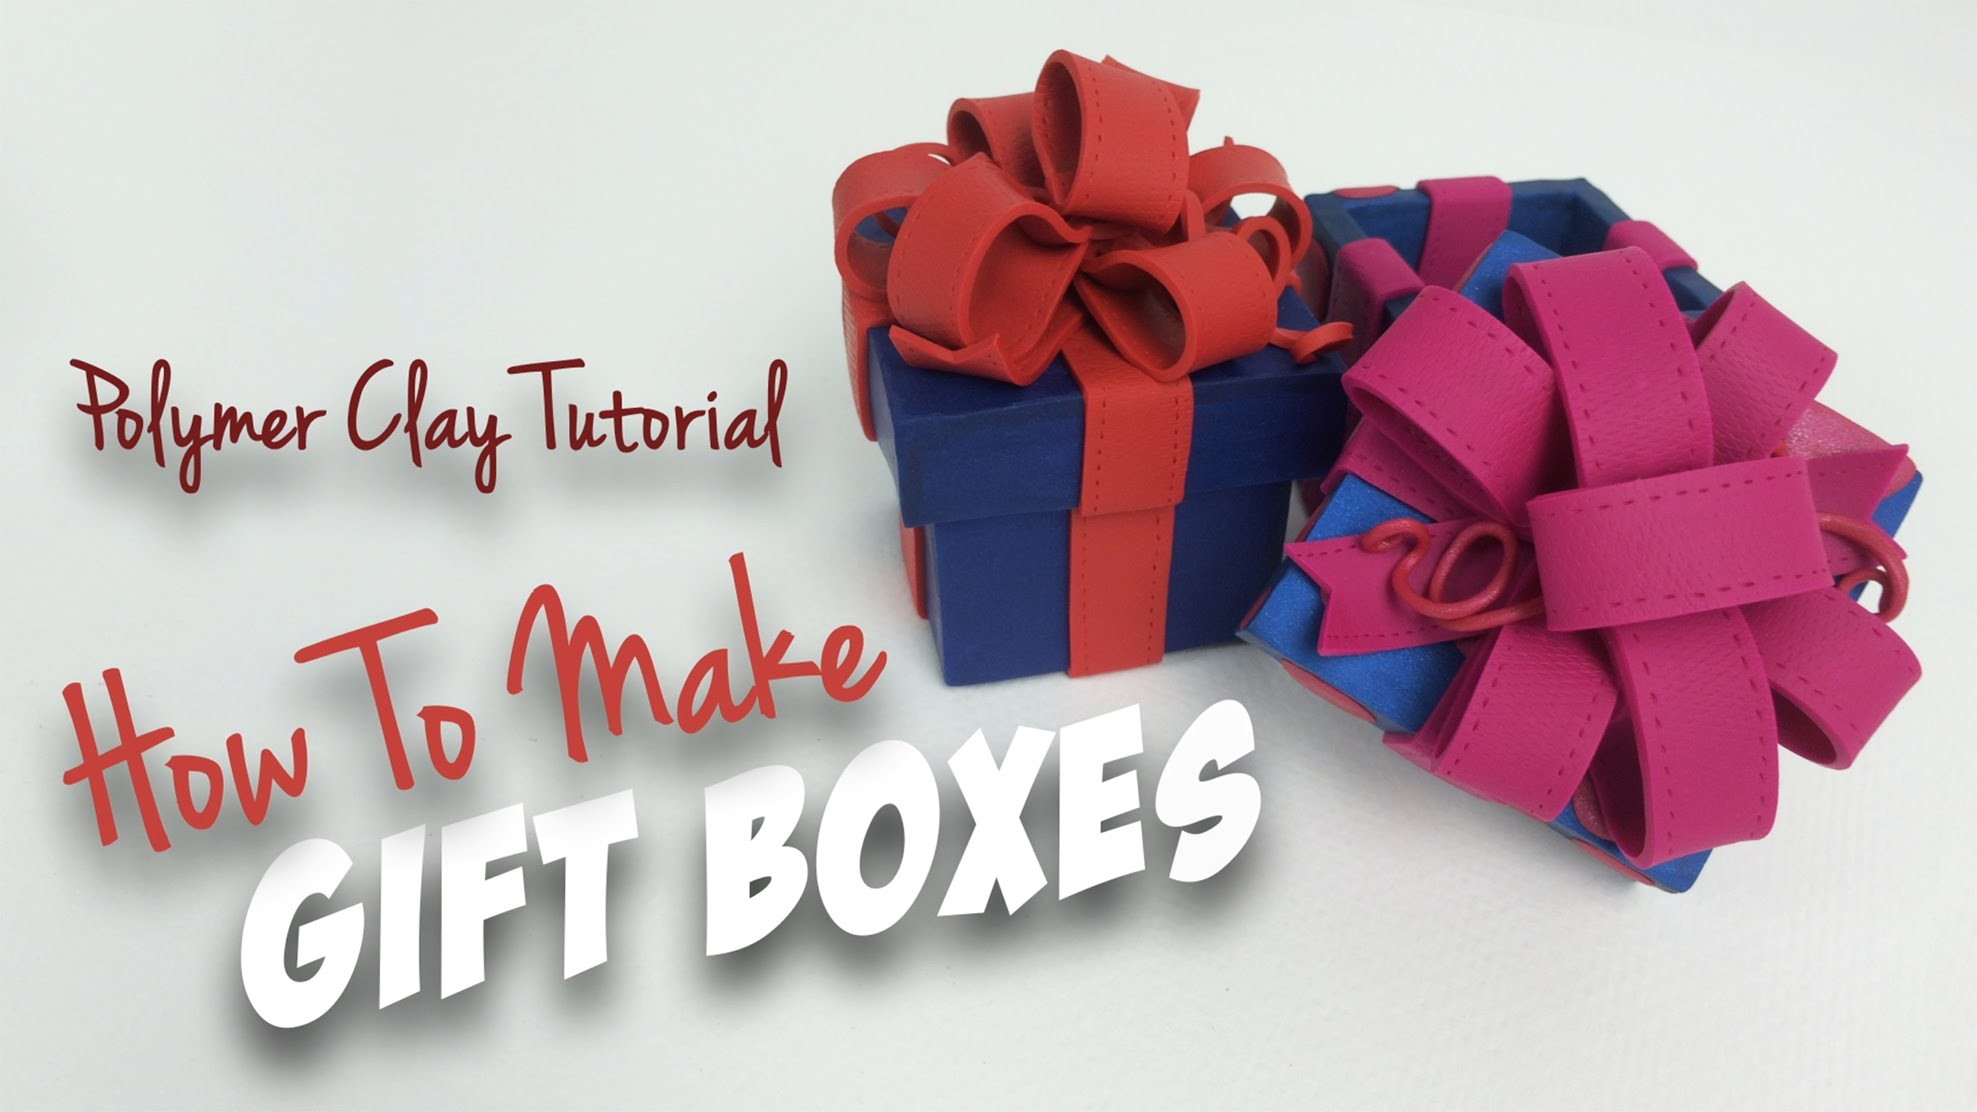 """Polymer Clay Tutorial """"How to make Gift Boxes"""""""